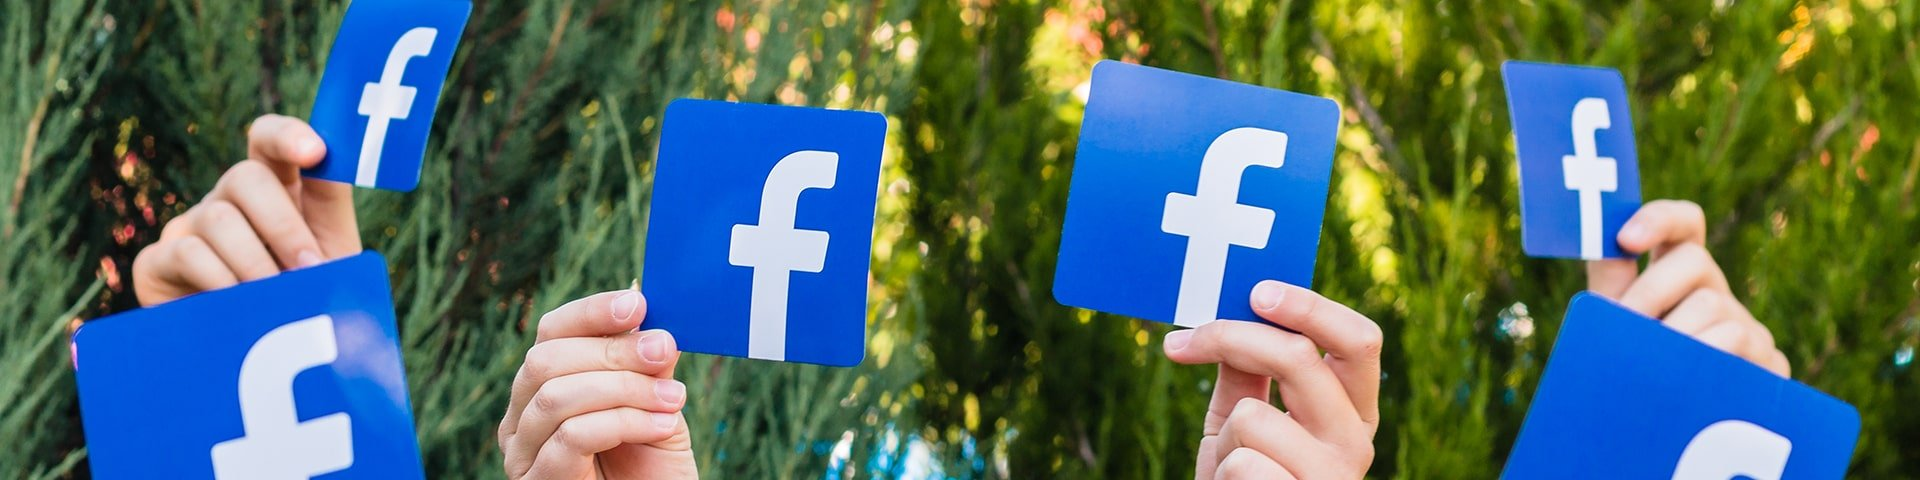 How to View Facebook Profile as Public: Through Other's Eyes